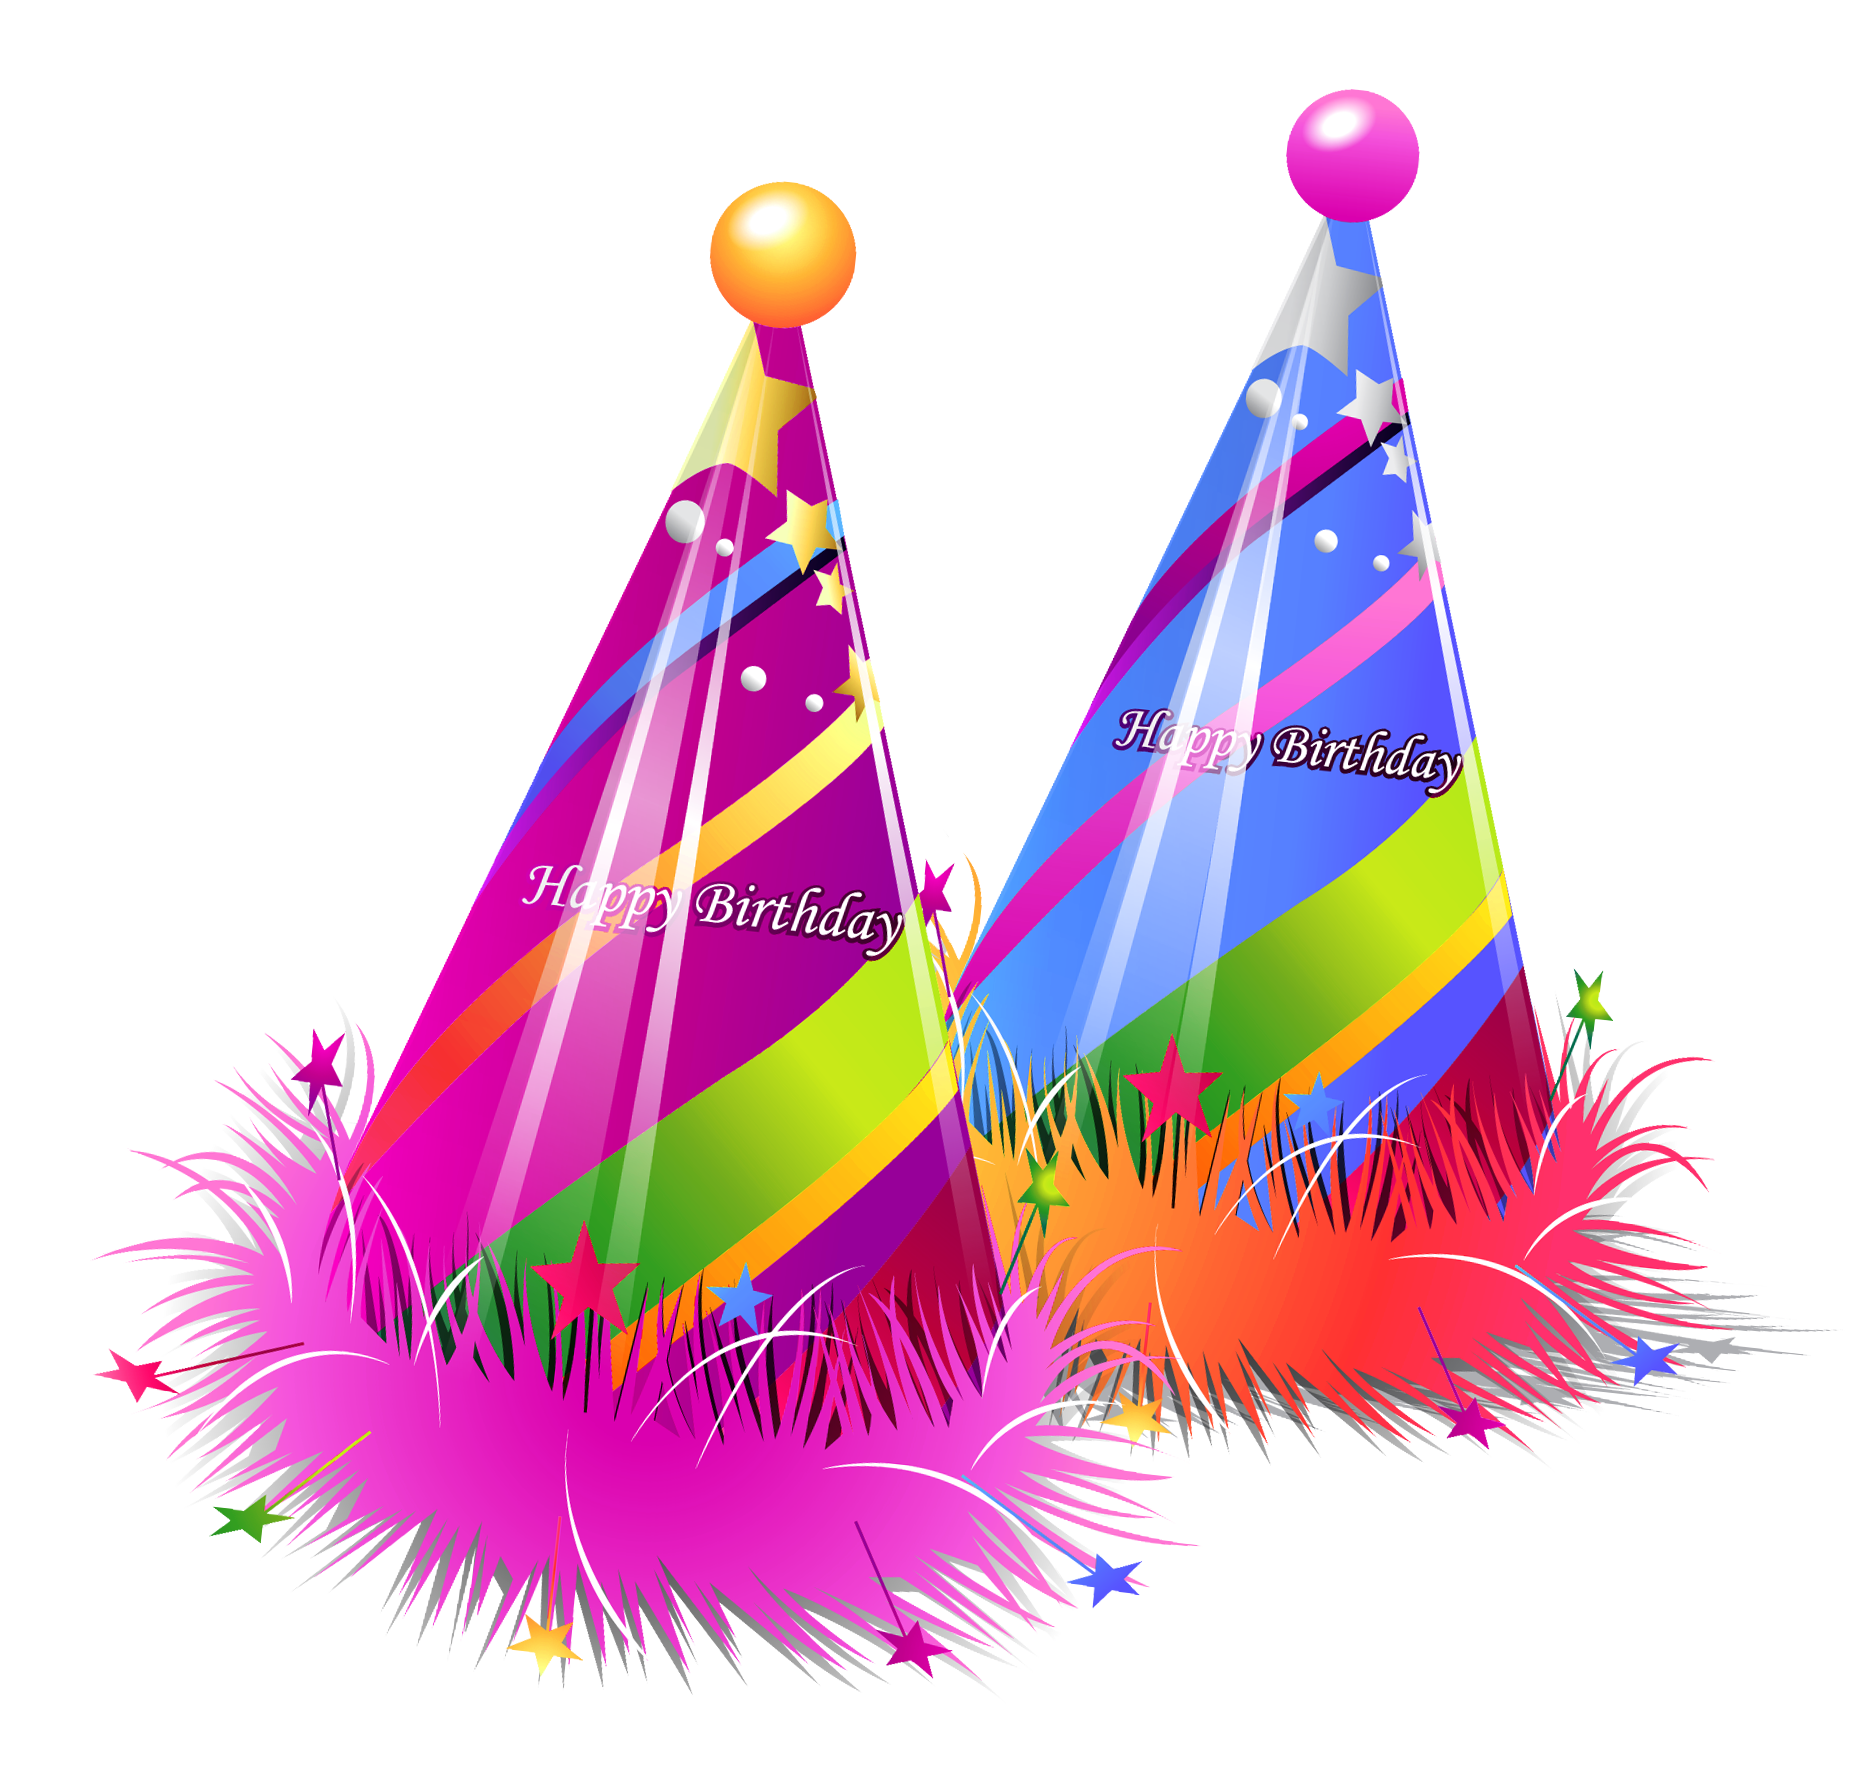 Two Birthday Hat PNG Transparent Images image #43904